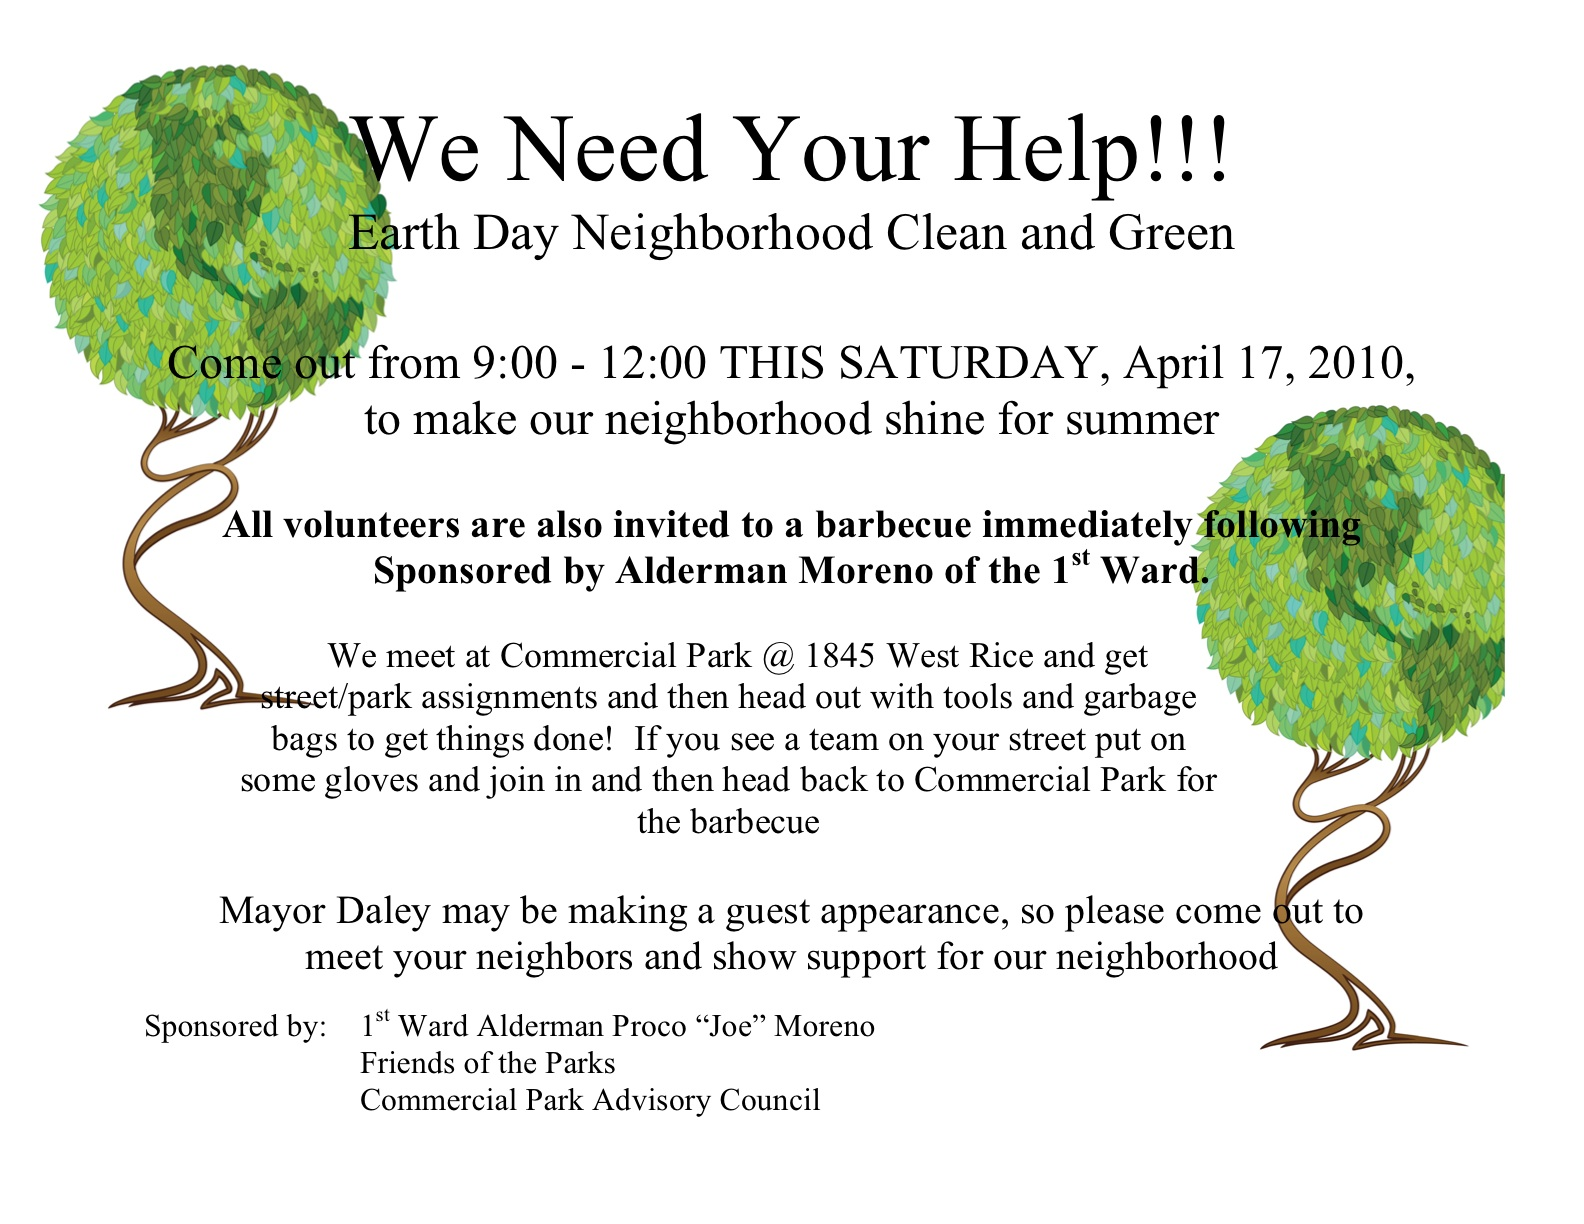 Earth Day Neighborhood Clean And Green